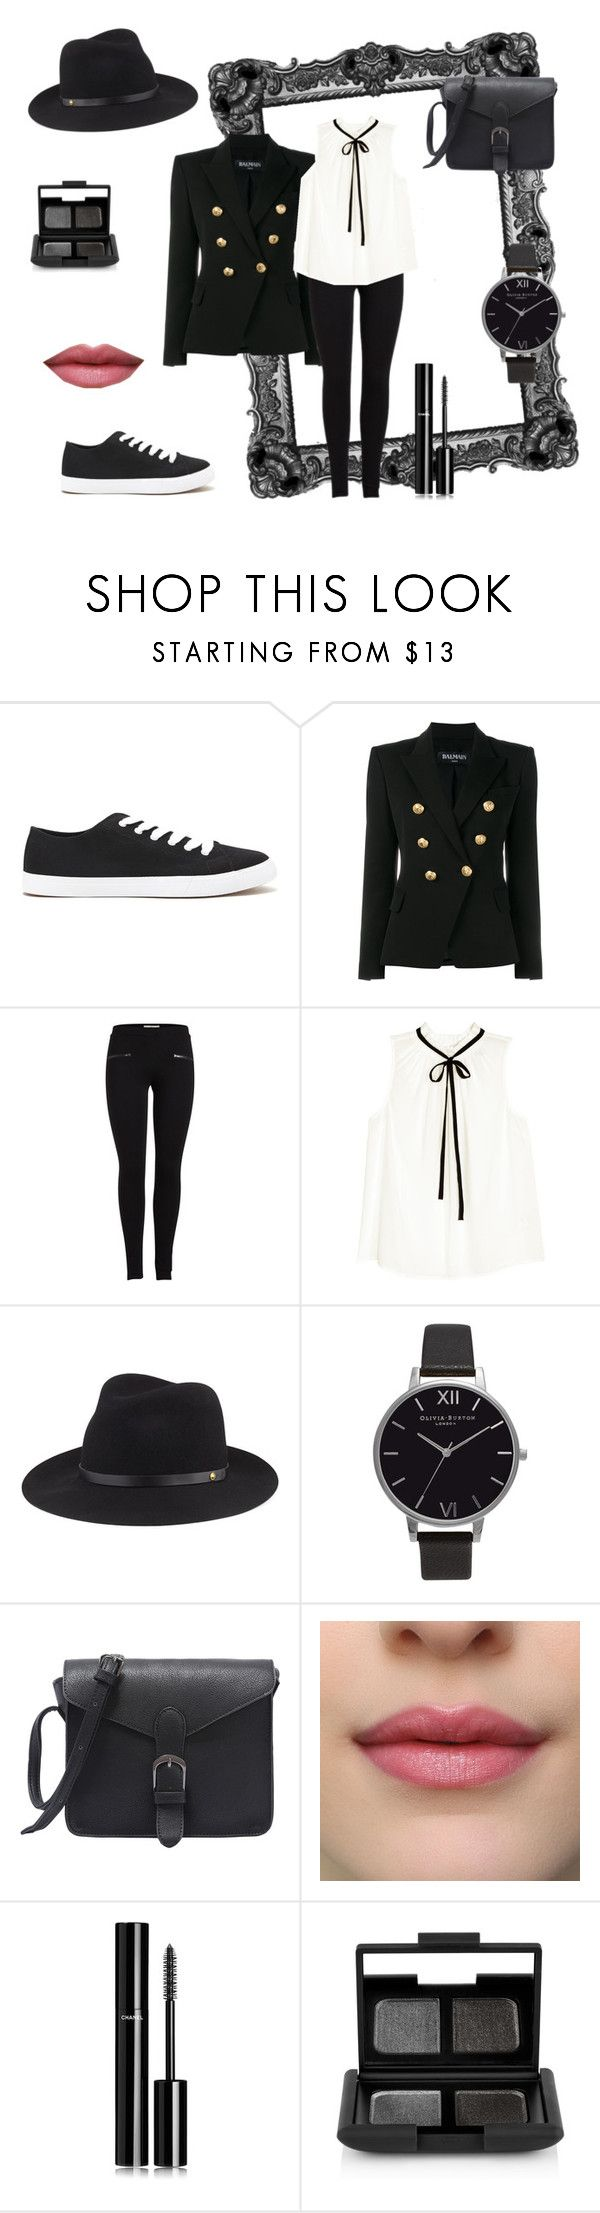 """Black Statement"" by arts22 on Polyvore featuring Mode, Forever 21, Balmain, H&M, rag & bone, Olivia Burton, Chanel und NARS Cosmetics"